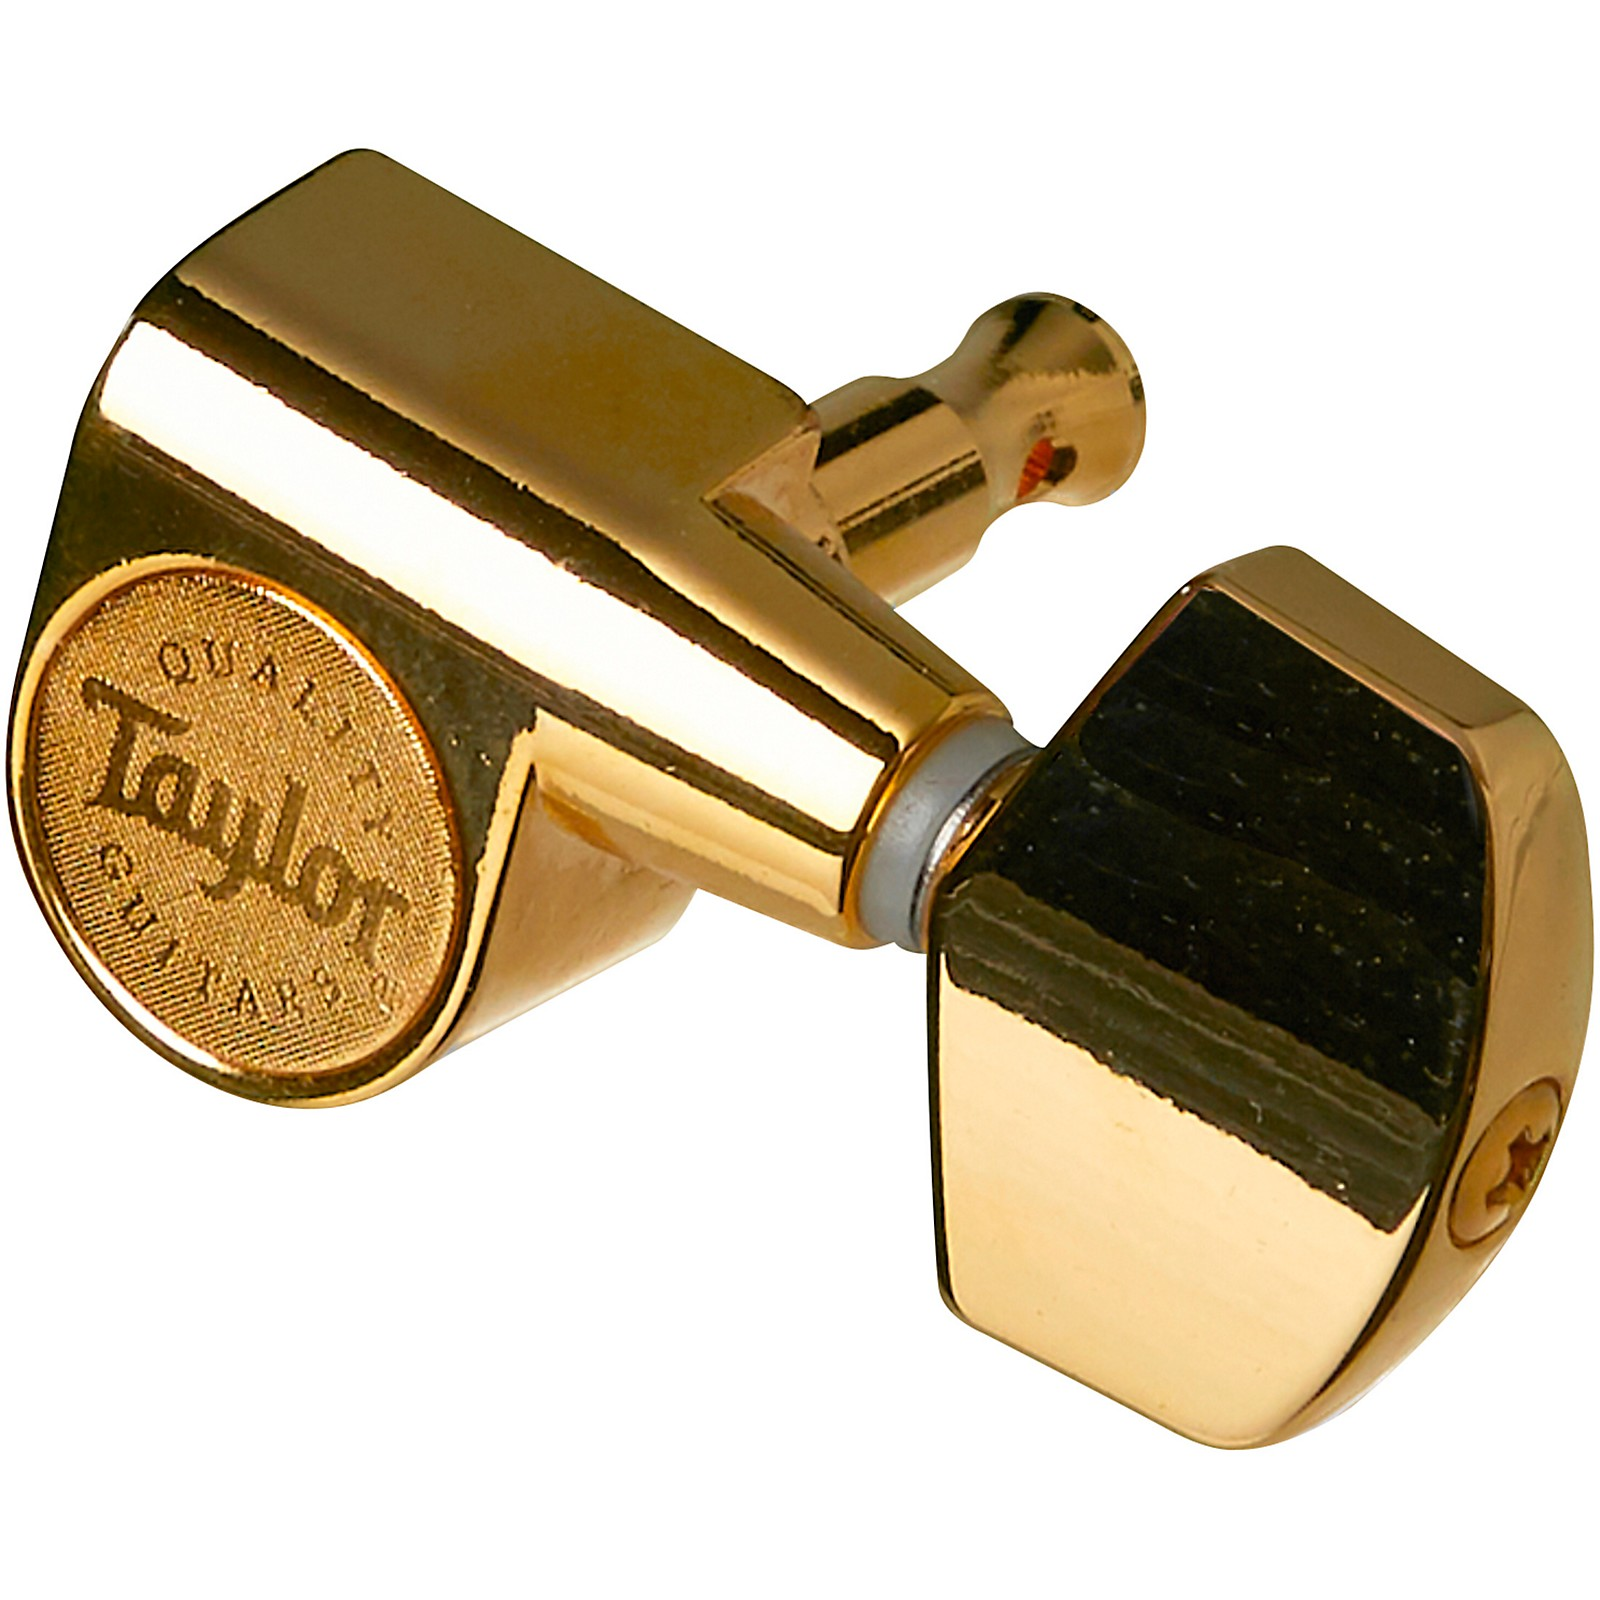 Taylor Guitar Tuners 18:1 6-String